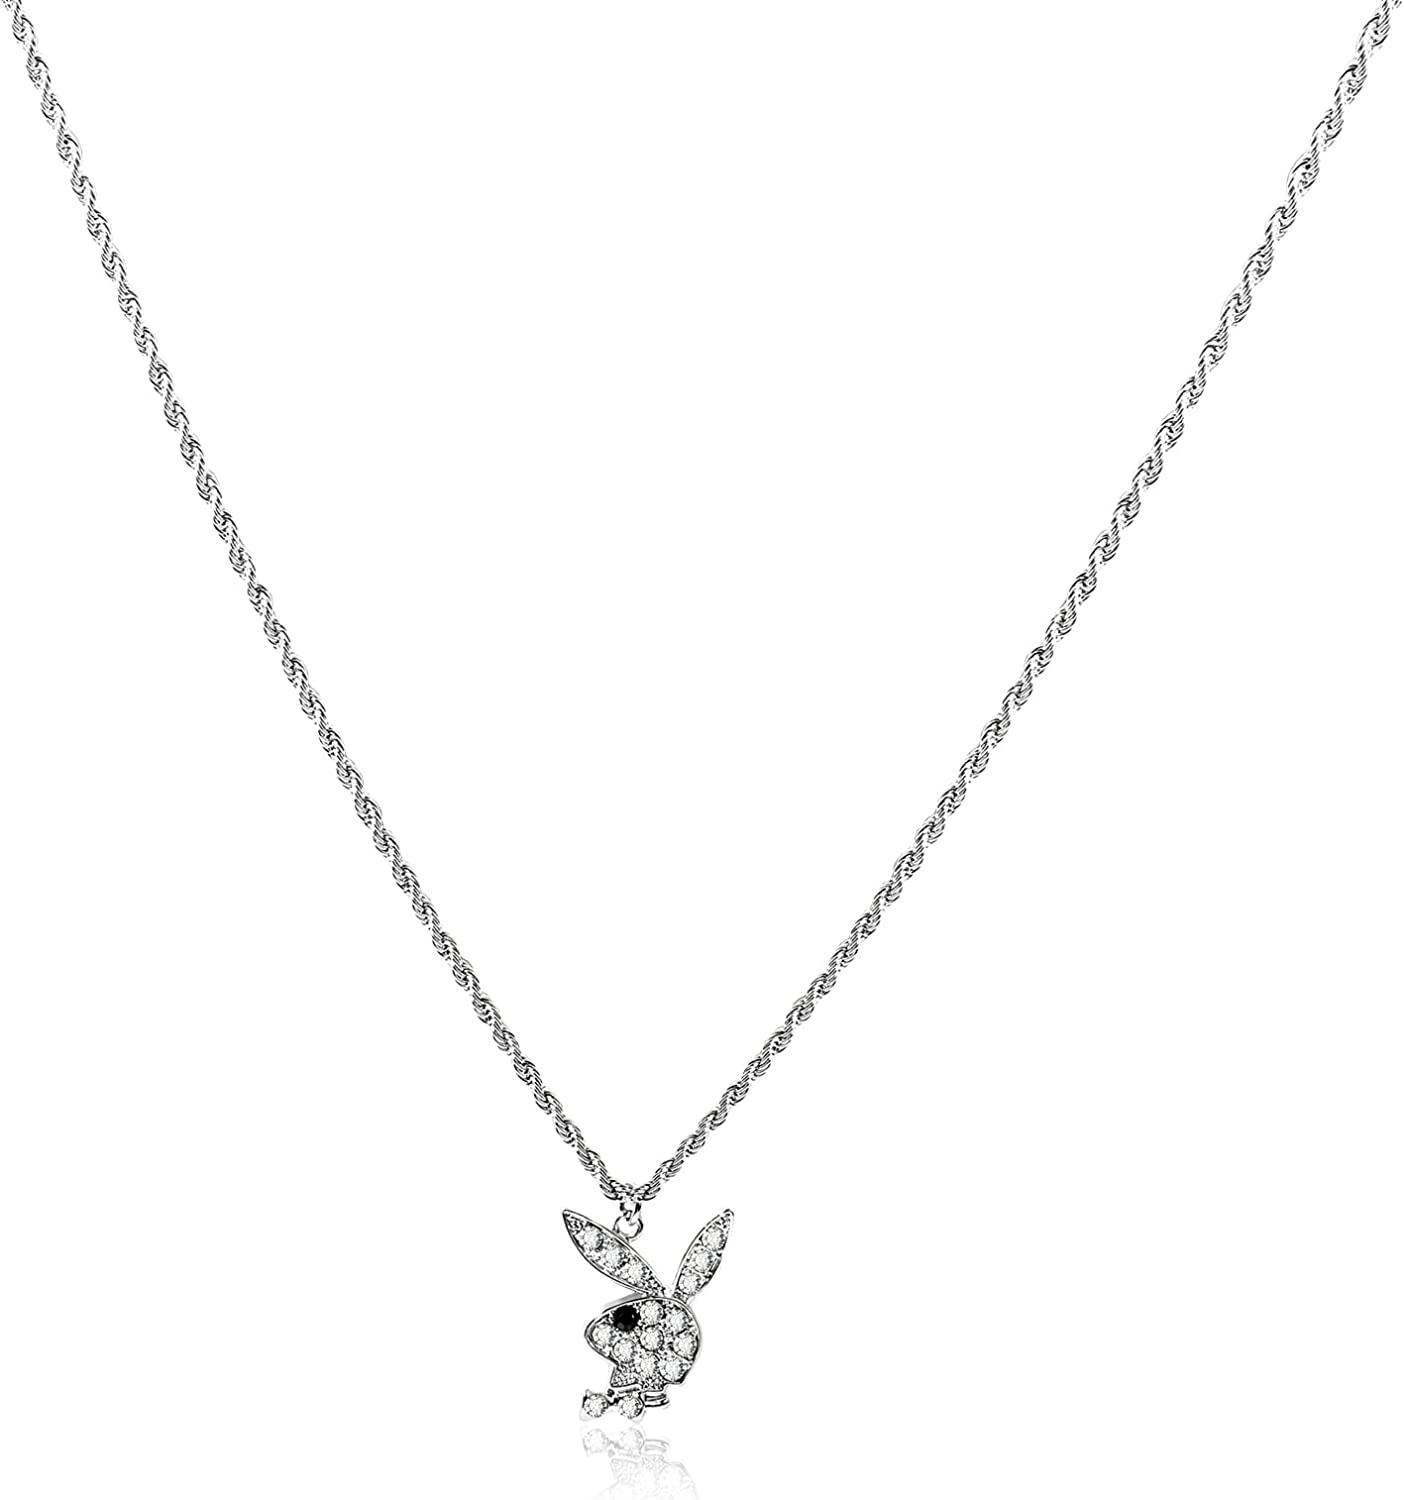 Rhinestone Rabbit Pendant Choker Necklace Adjustable Stainless Steel Chain Necklace with Extender Punk Animal Bunny Charm Jewelry for Women Girls